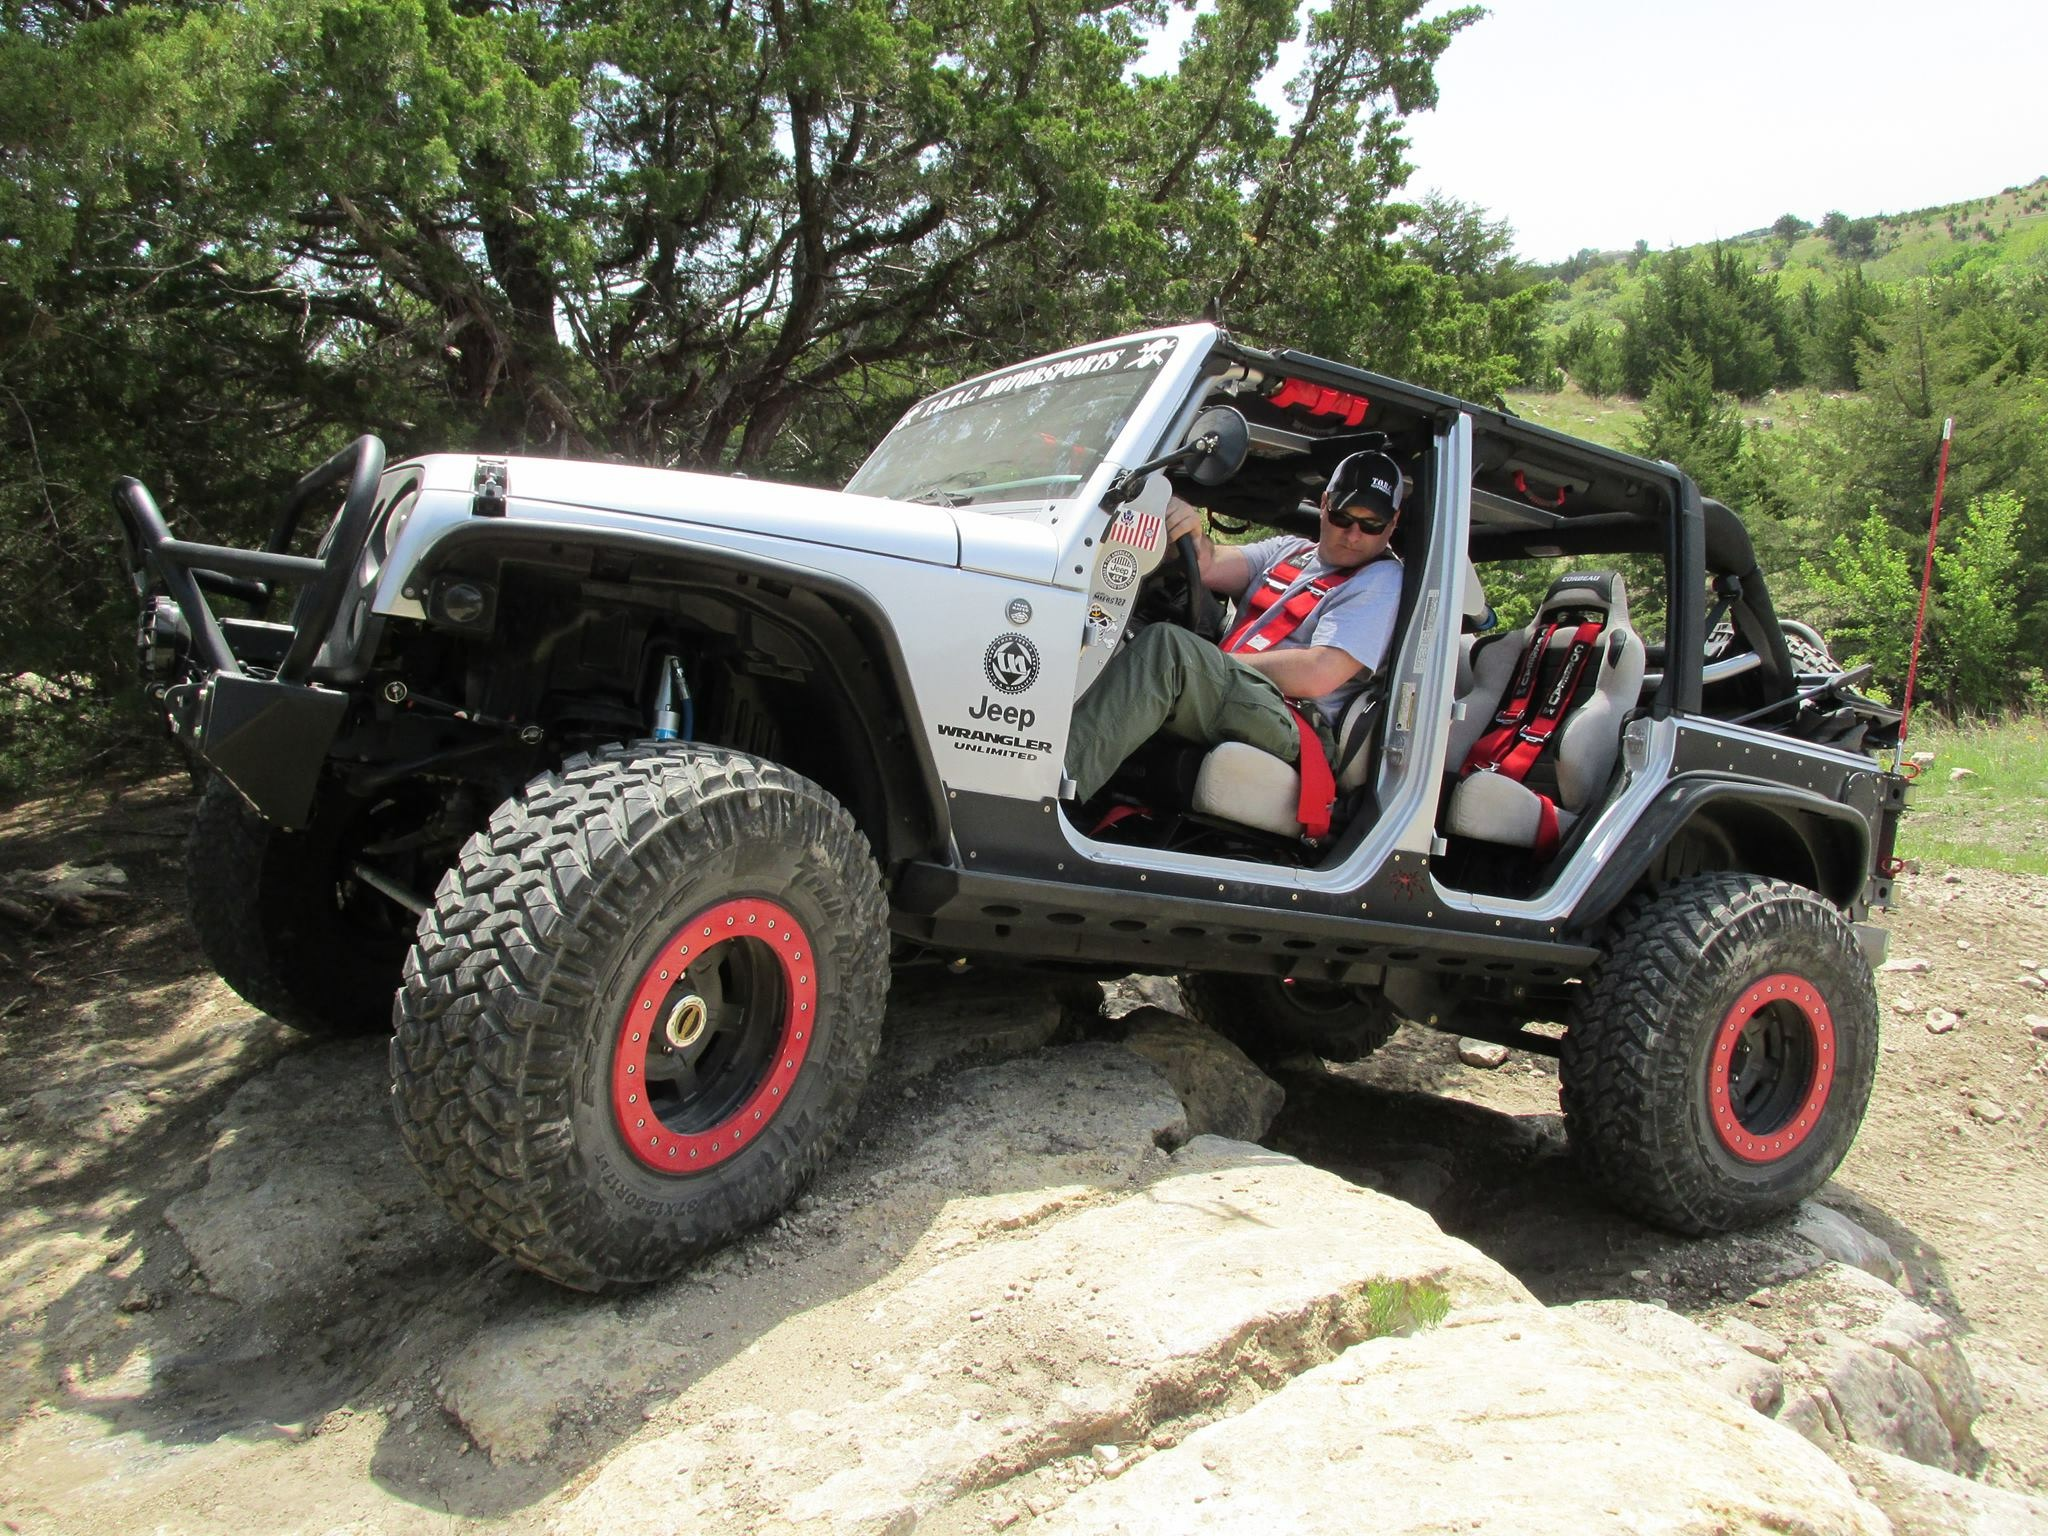 Photo courtesy of ALLEN MYERS  LRC's new Safety Director Allen Myers doing some rock crawling in his Jeep.